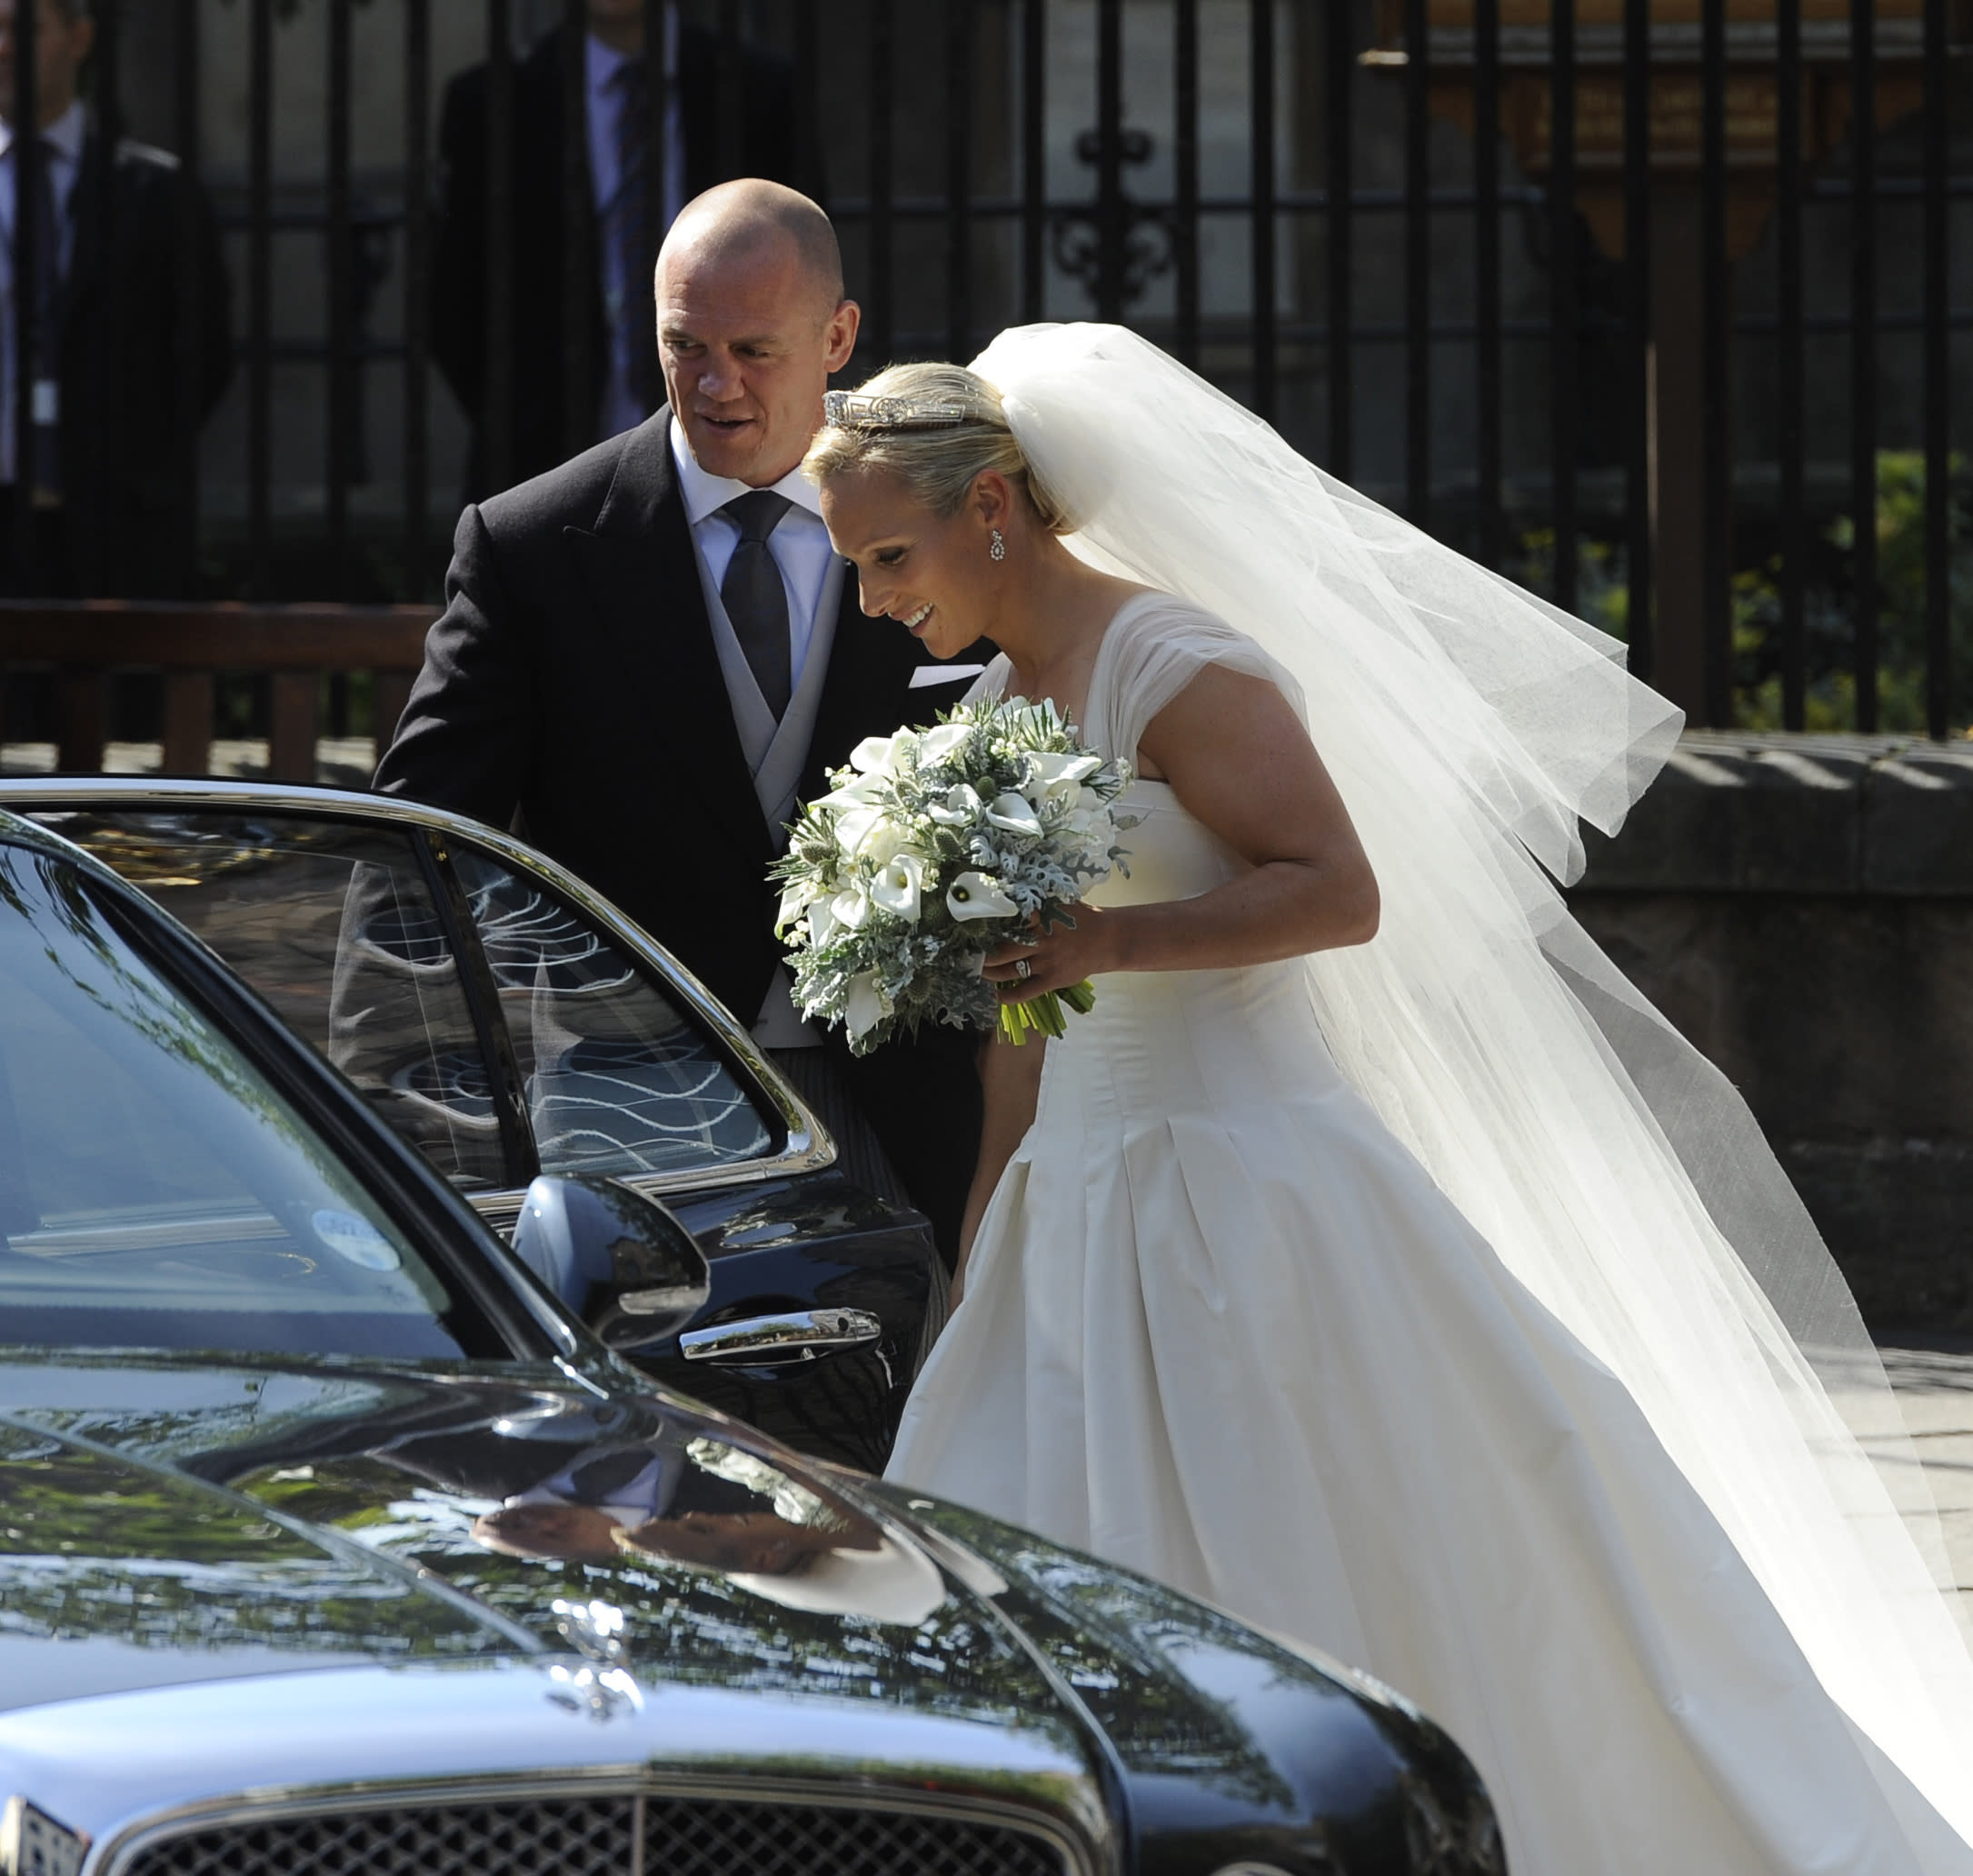 Britain's Zara Phillips, the eldest granddaughter of Queen Elizabeth, and her husband England rugby captain Mike Tindall, leave the church following their wedding at Canongate Kirk in Edinburgh, Scotland July 30, 2011. REUTERS/Russell Cheyne   (BRITAIN - Tags: ROYALS ENTERTAINMENT SOCIETY SPORT)